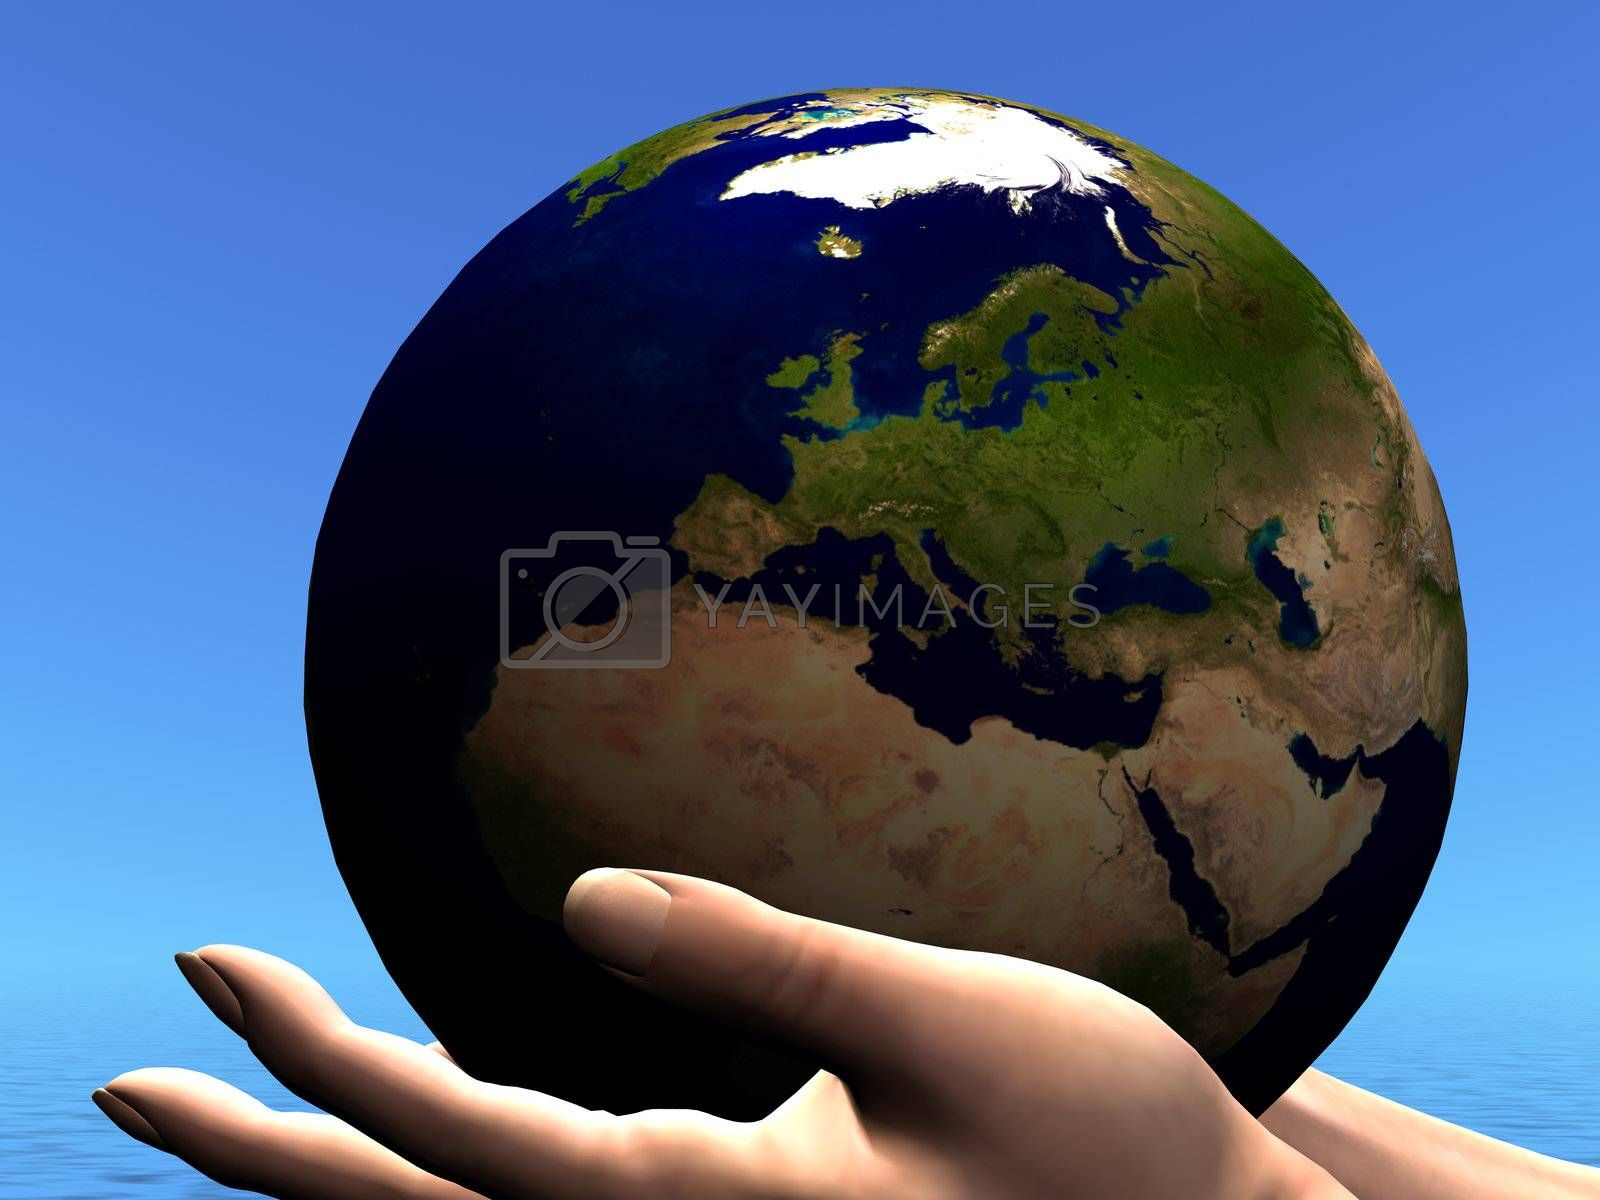 The planet Earth is held in caring hands.